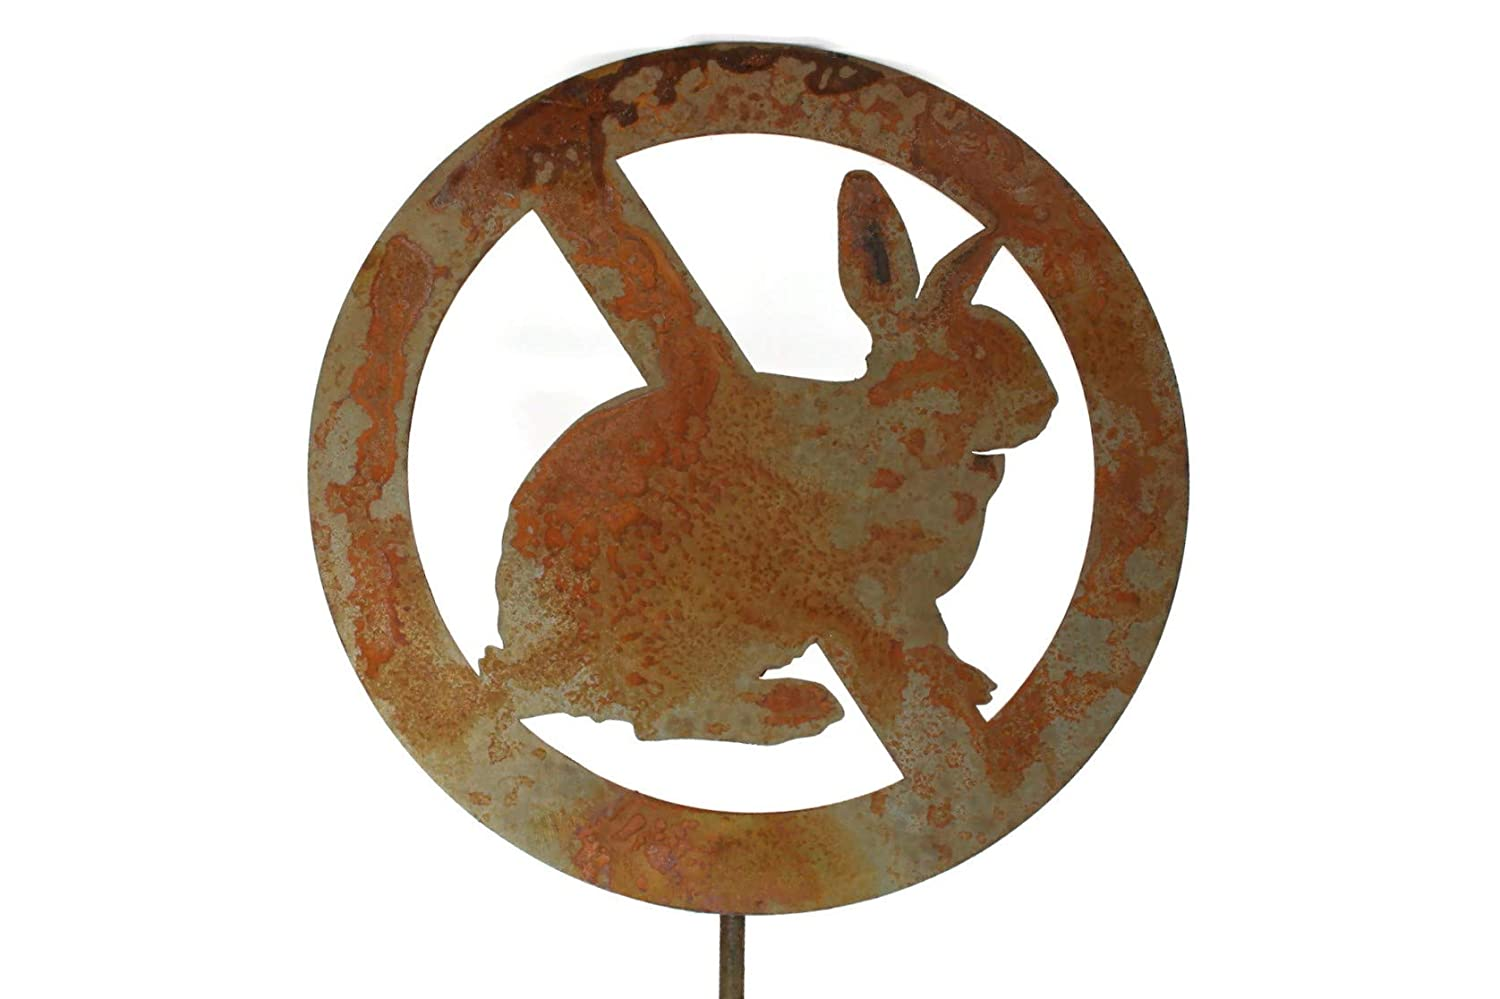 No Rabbits Allowed Bunny Prevention Rustic Garden Stake 22 Inches Tall